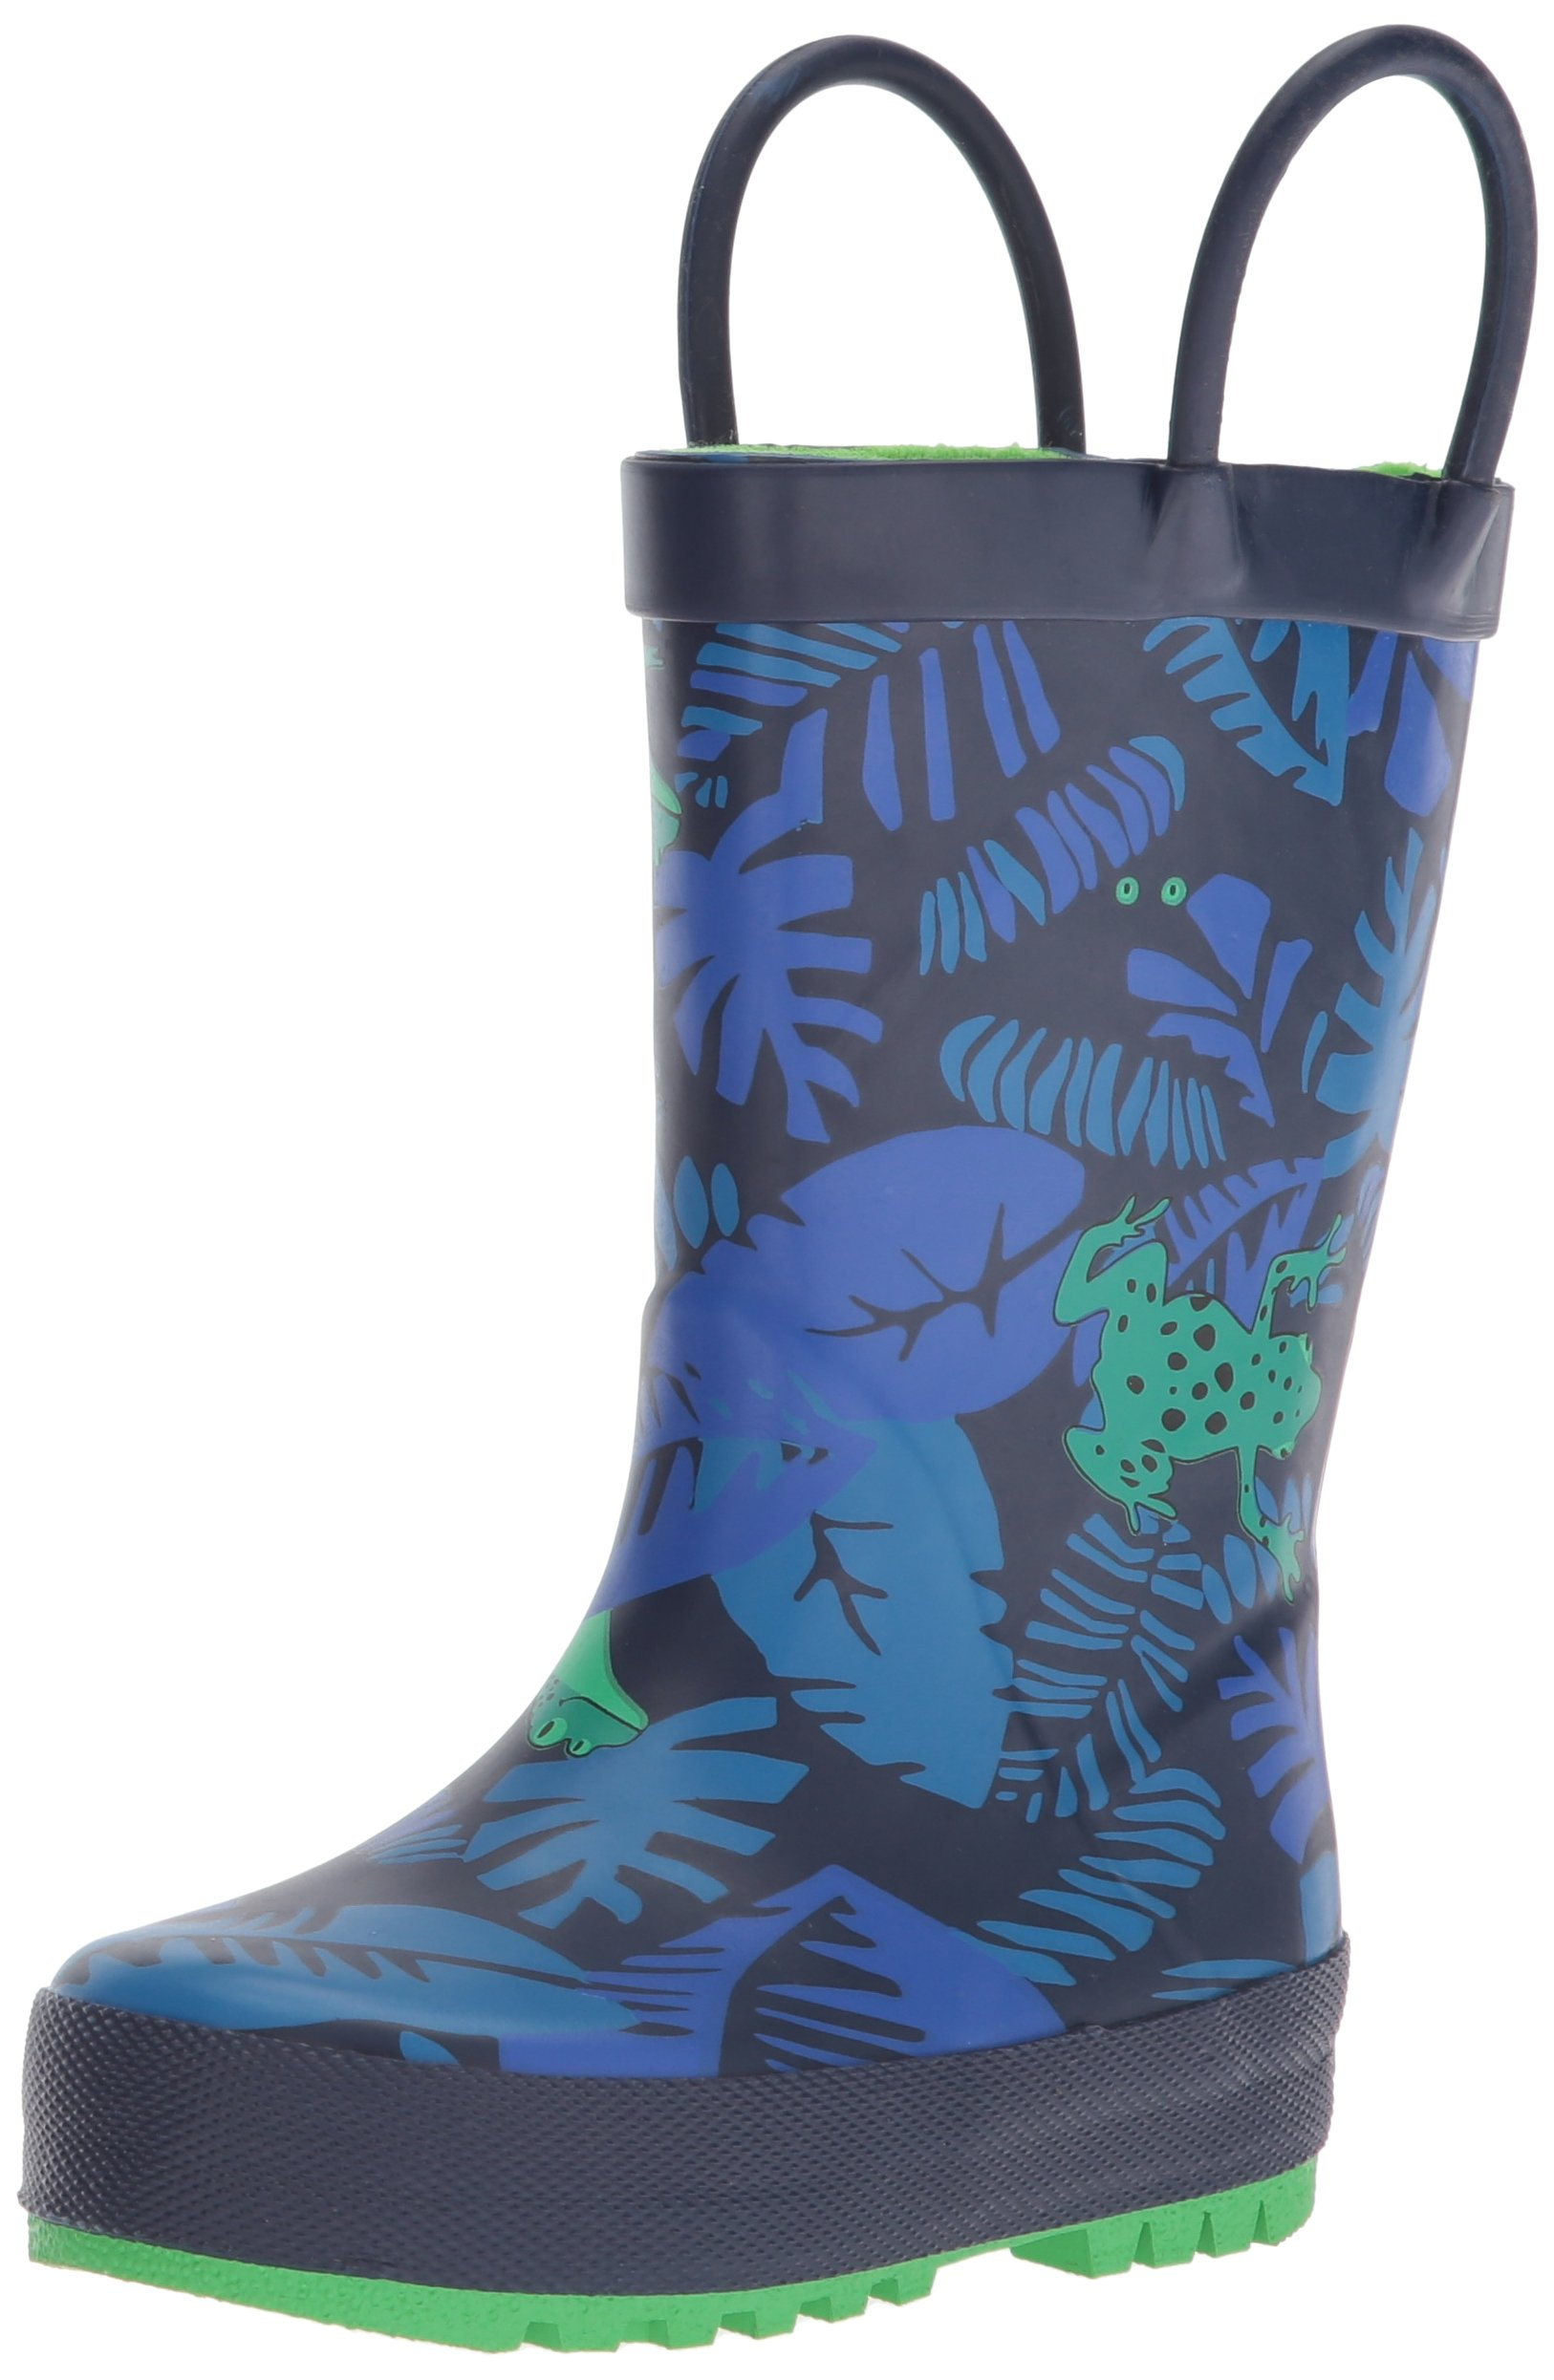 Carter's Boys' Andric Rain Boot, Navy, 11 M US Little Kid